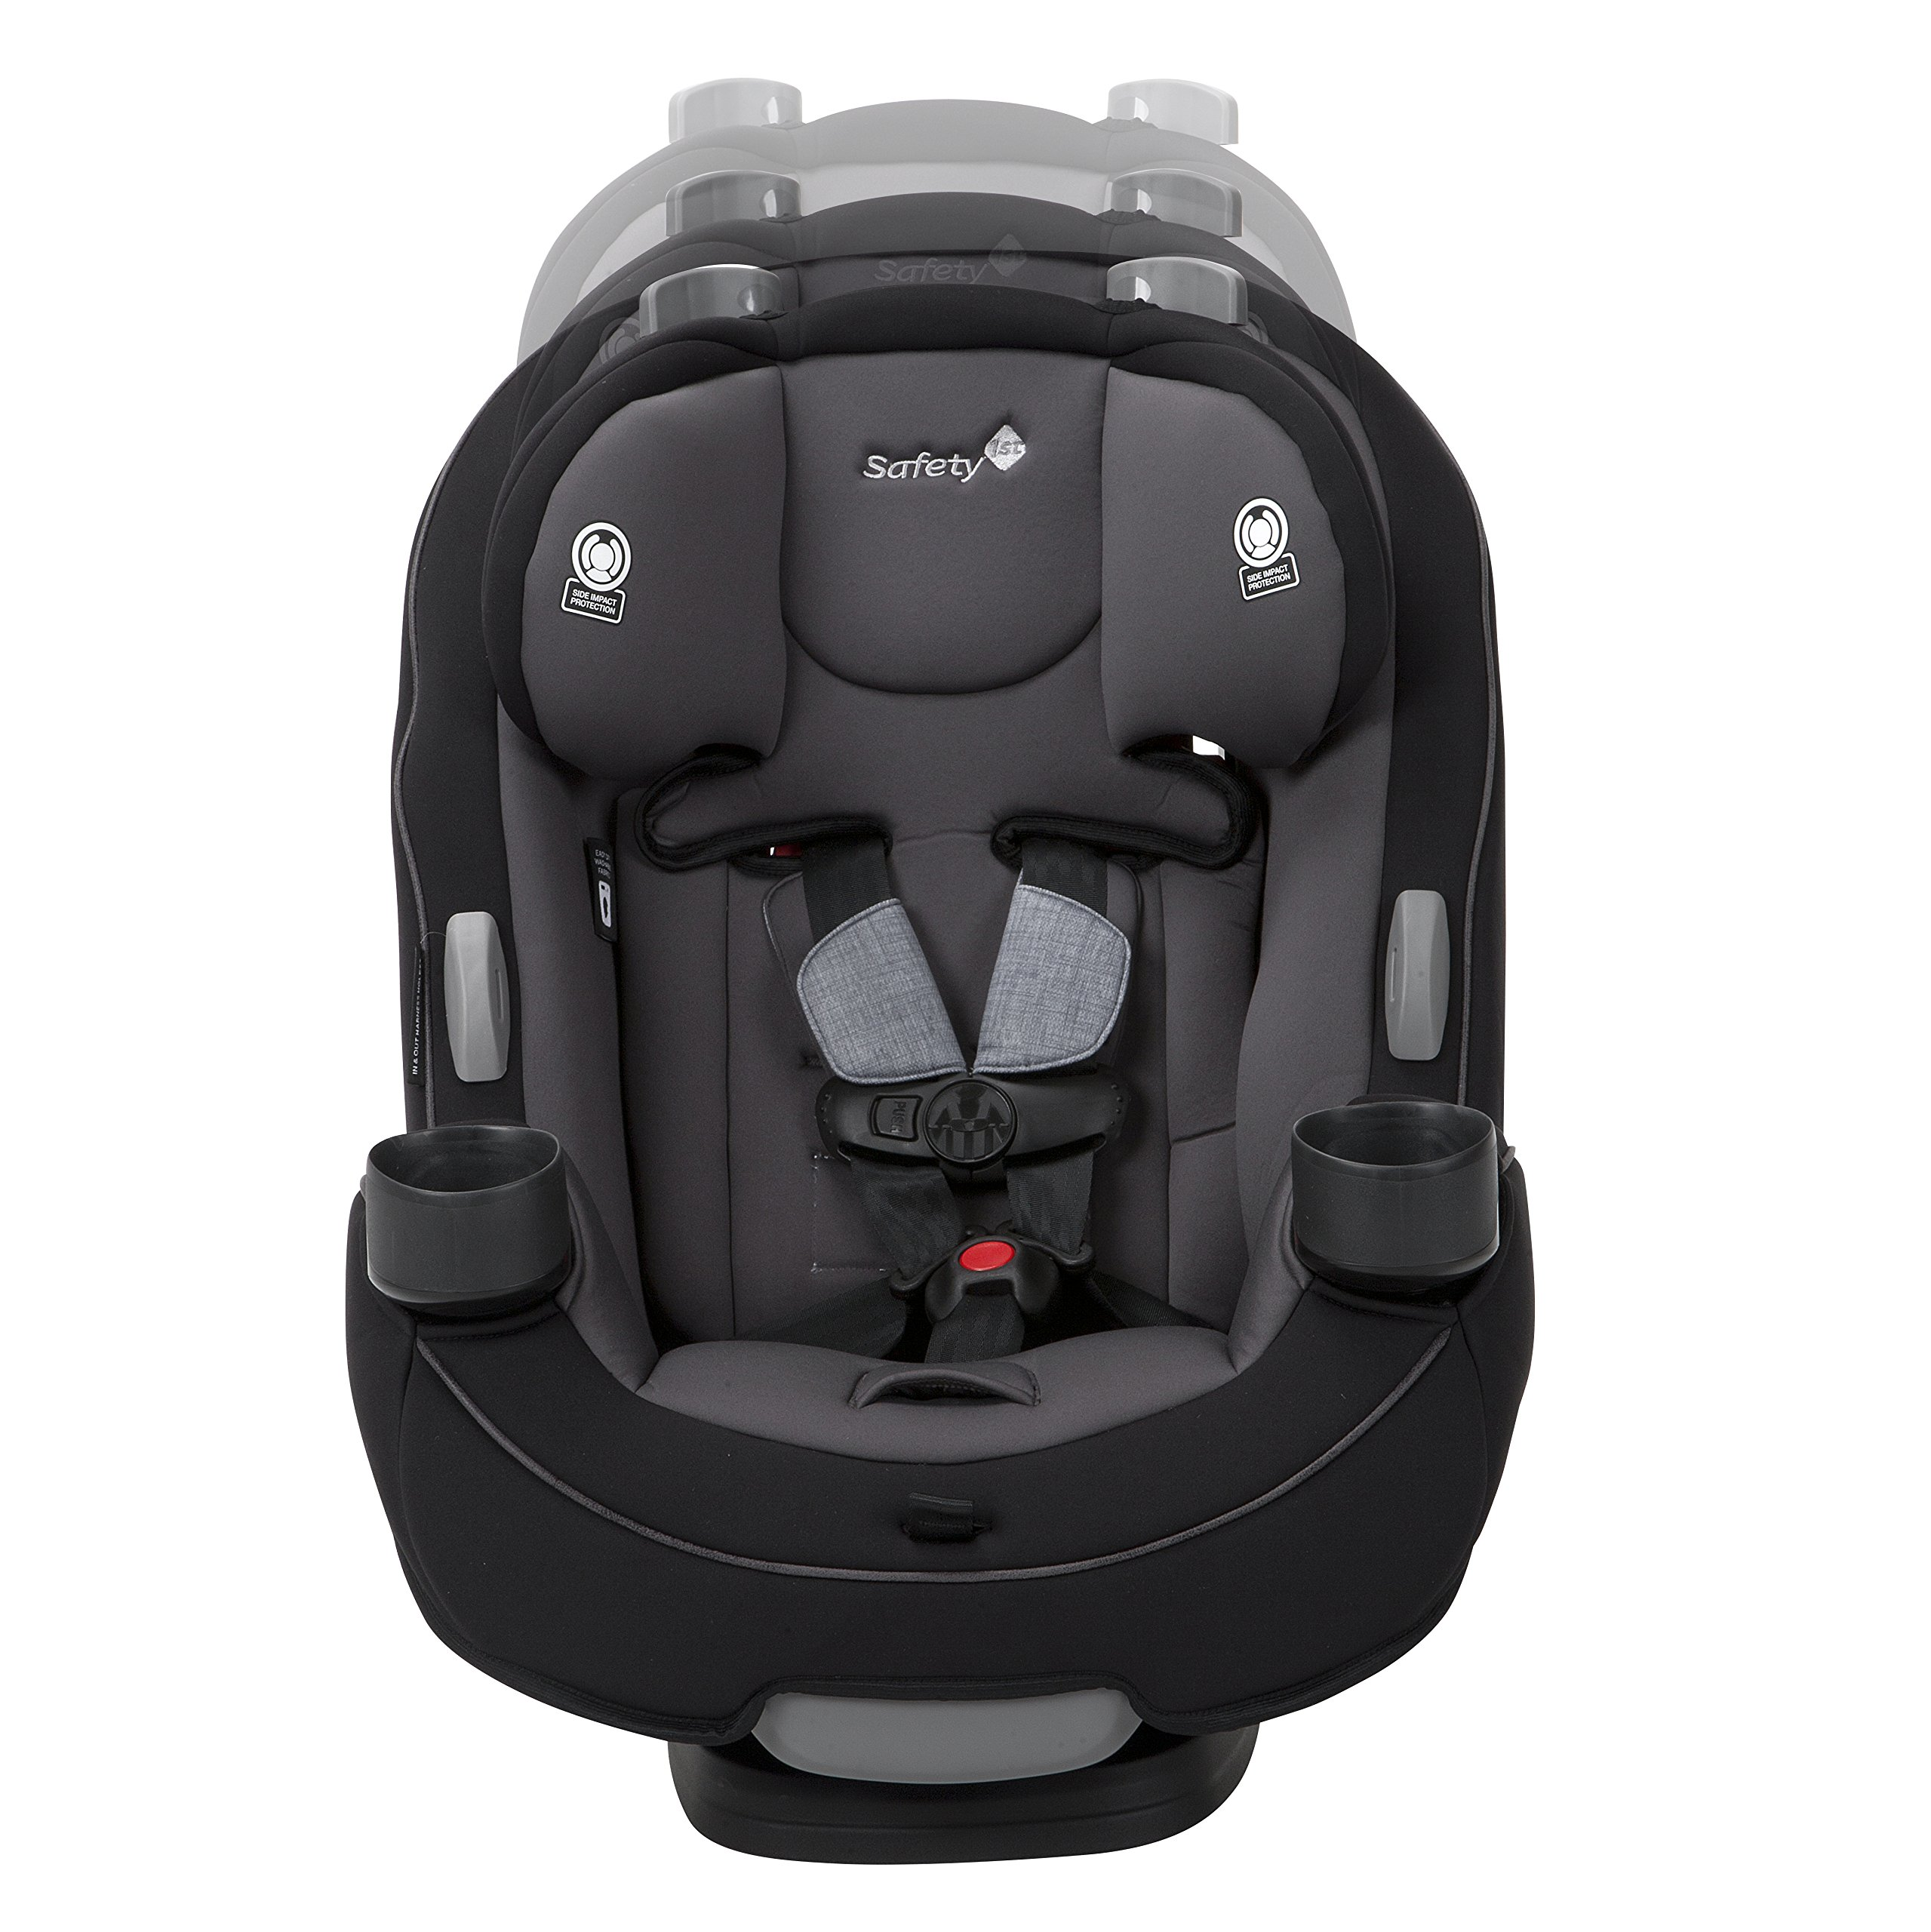 Safety 1st Grow and Go 3-in-1 Convertible Car Seat, Harvest Moon by Safety 1st (Image #12)